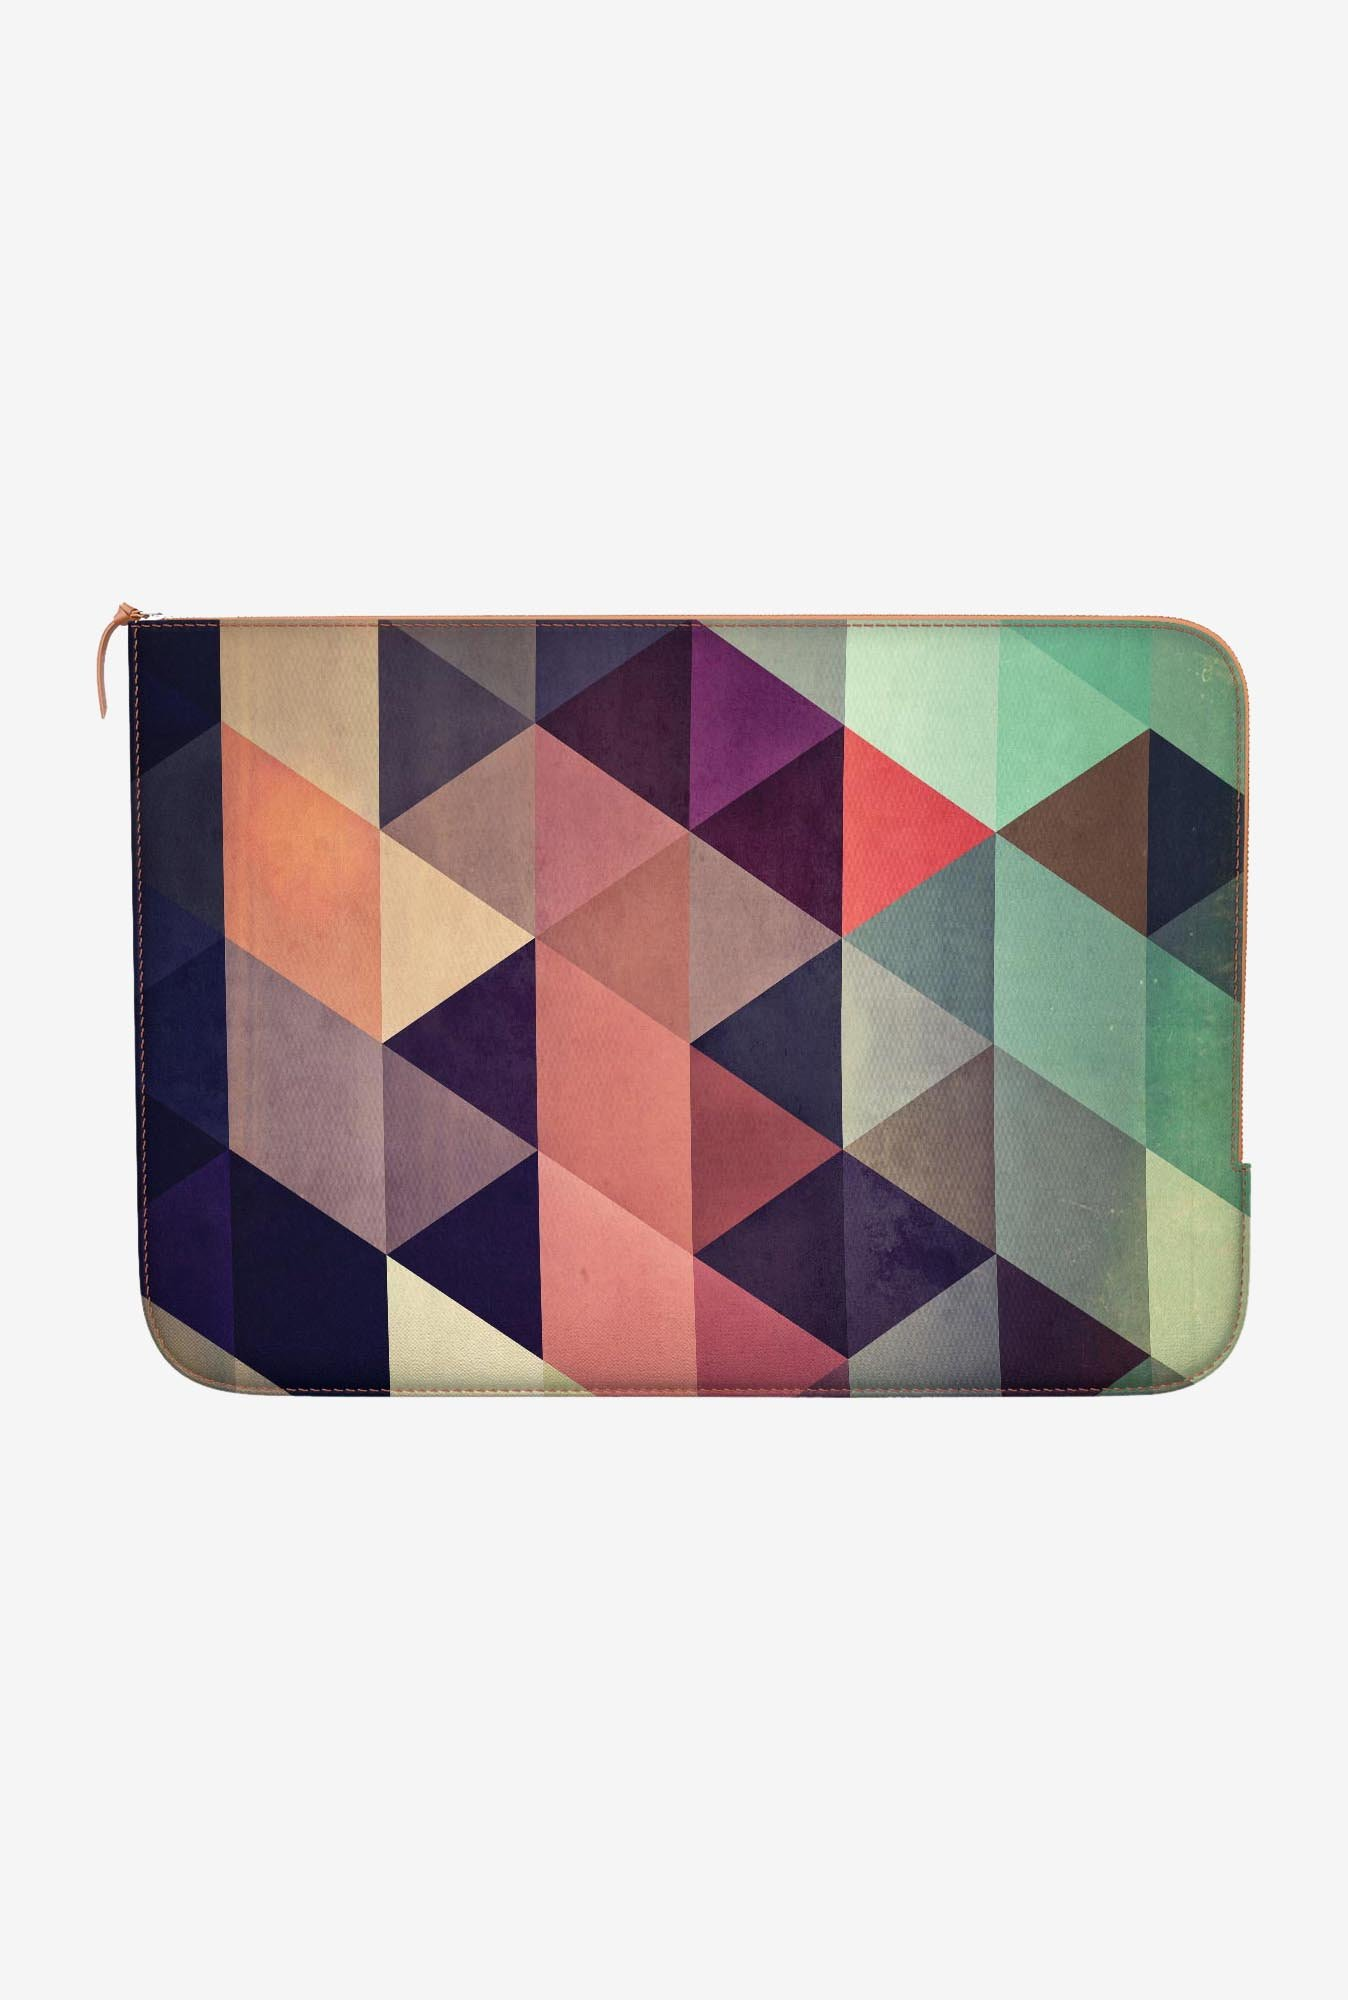 DailyObjects Tryypyzoyd Hrxtl MacBook Air 13 Zippered Sleeve